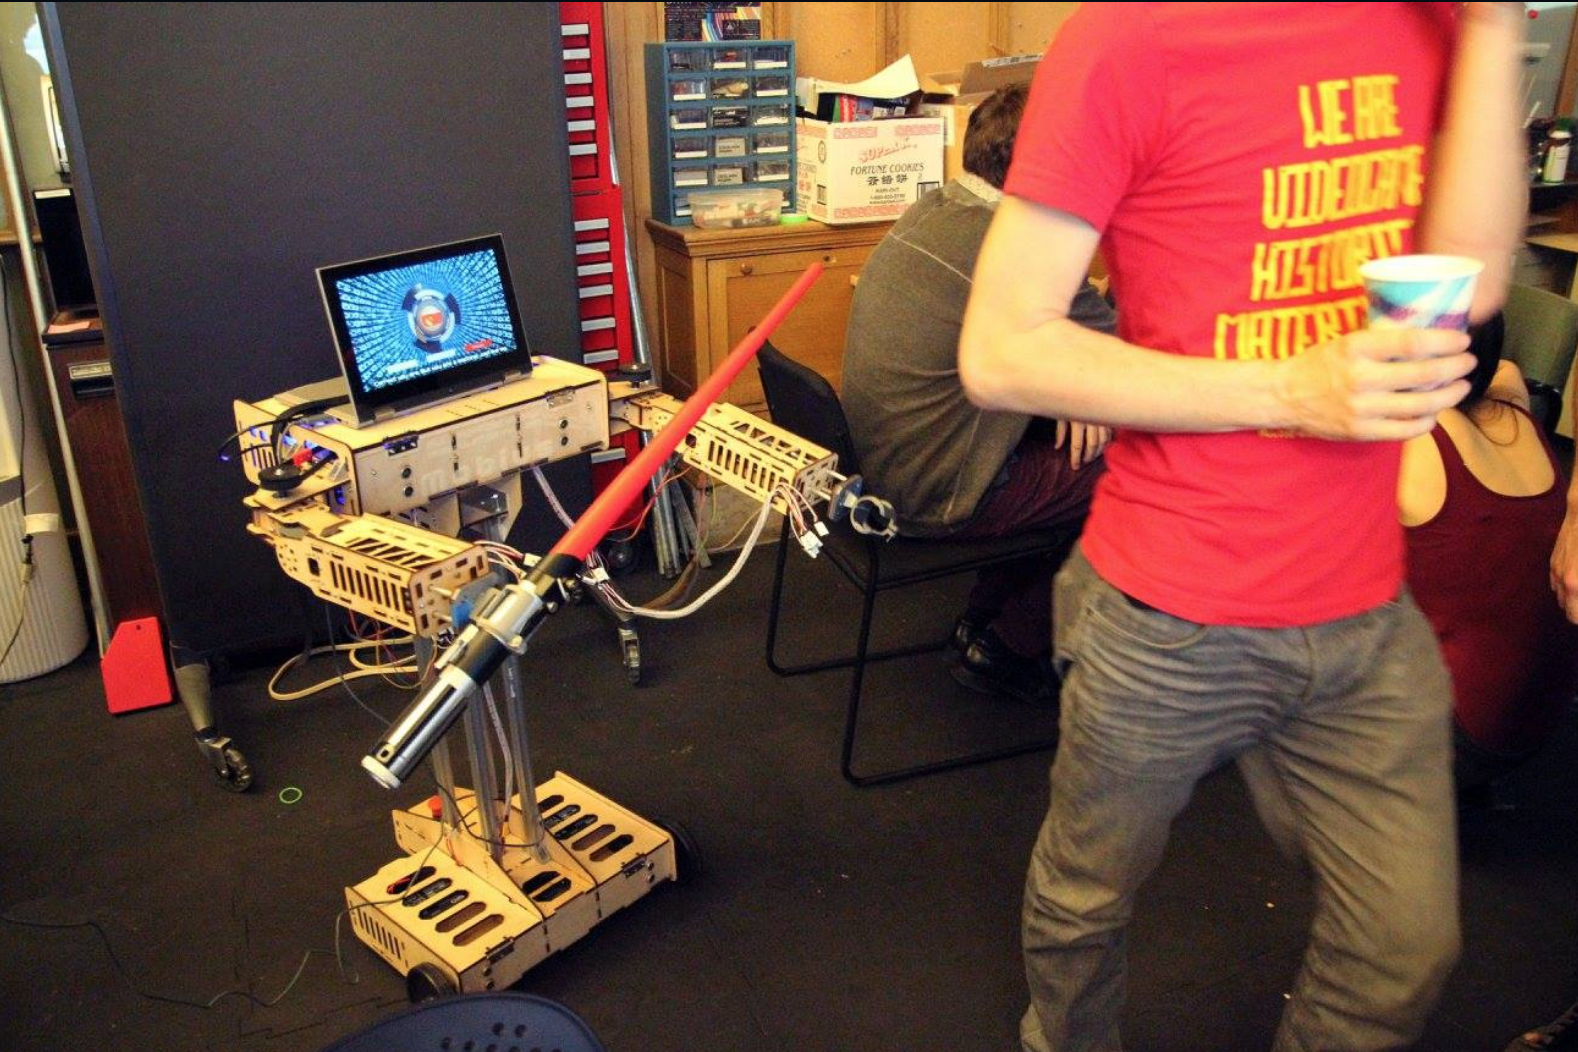 a display of an experimental game design project made of a computer and lightsaber